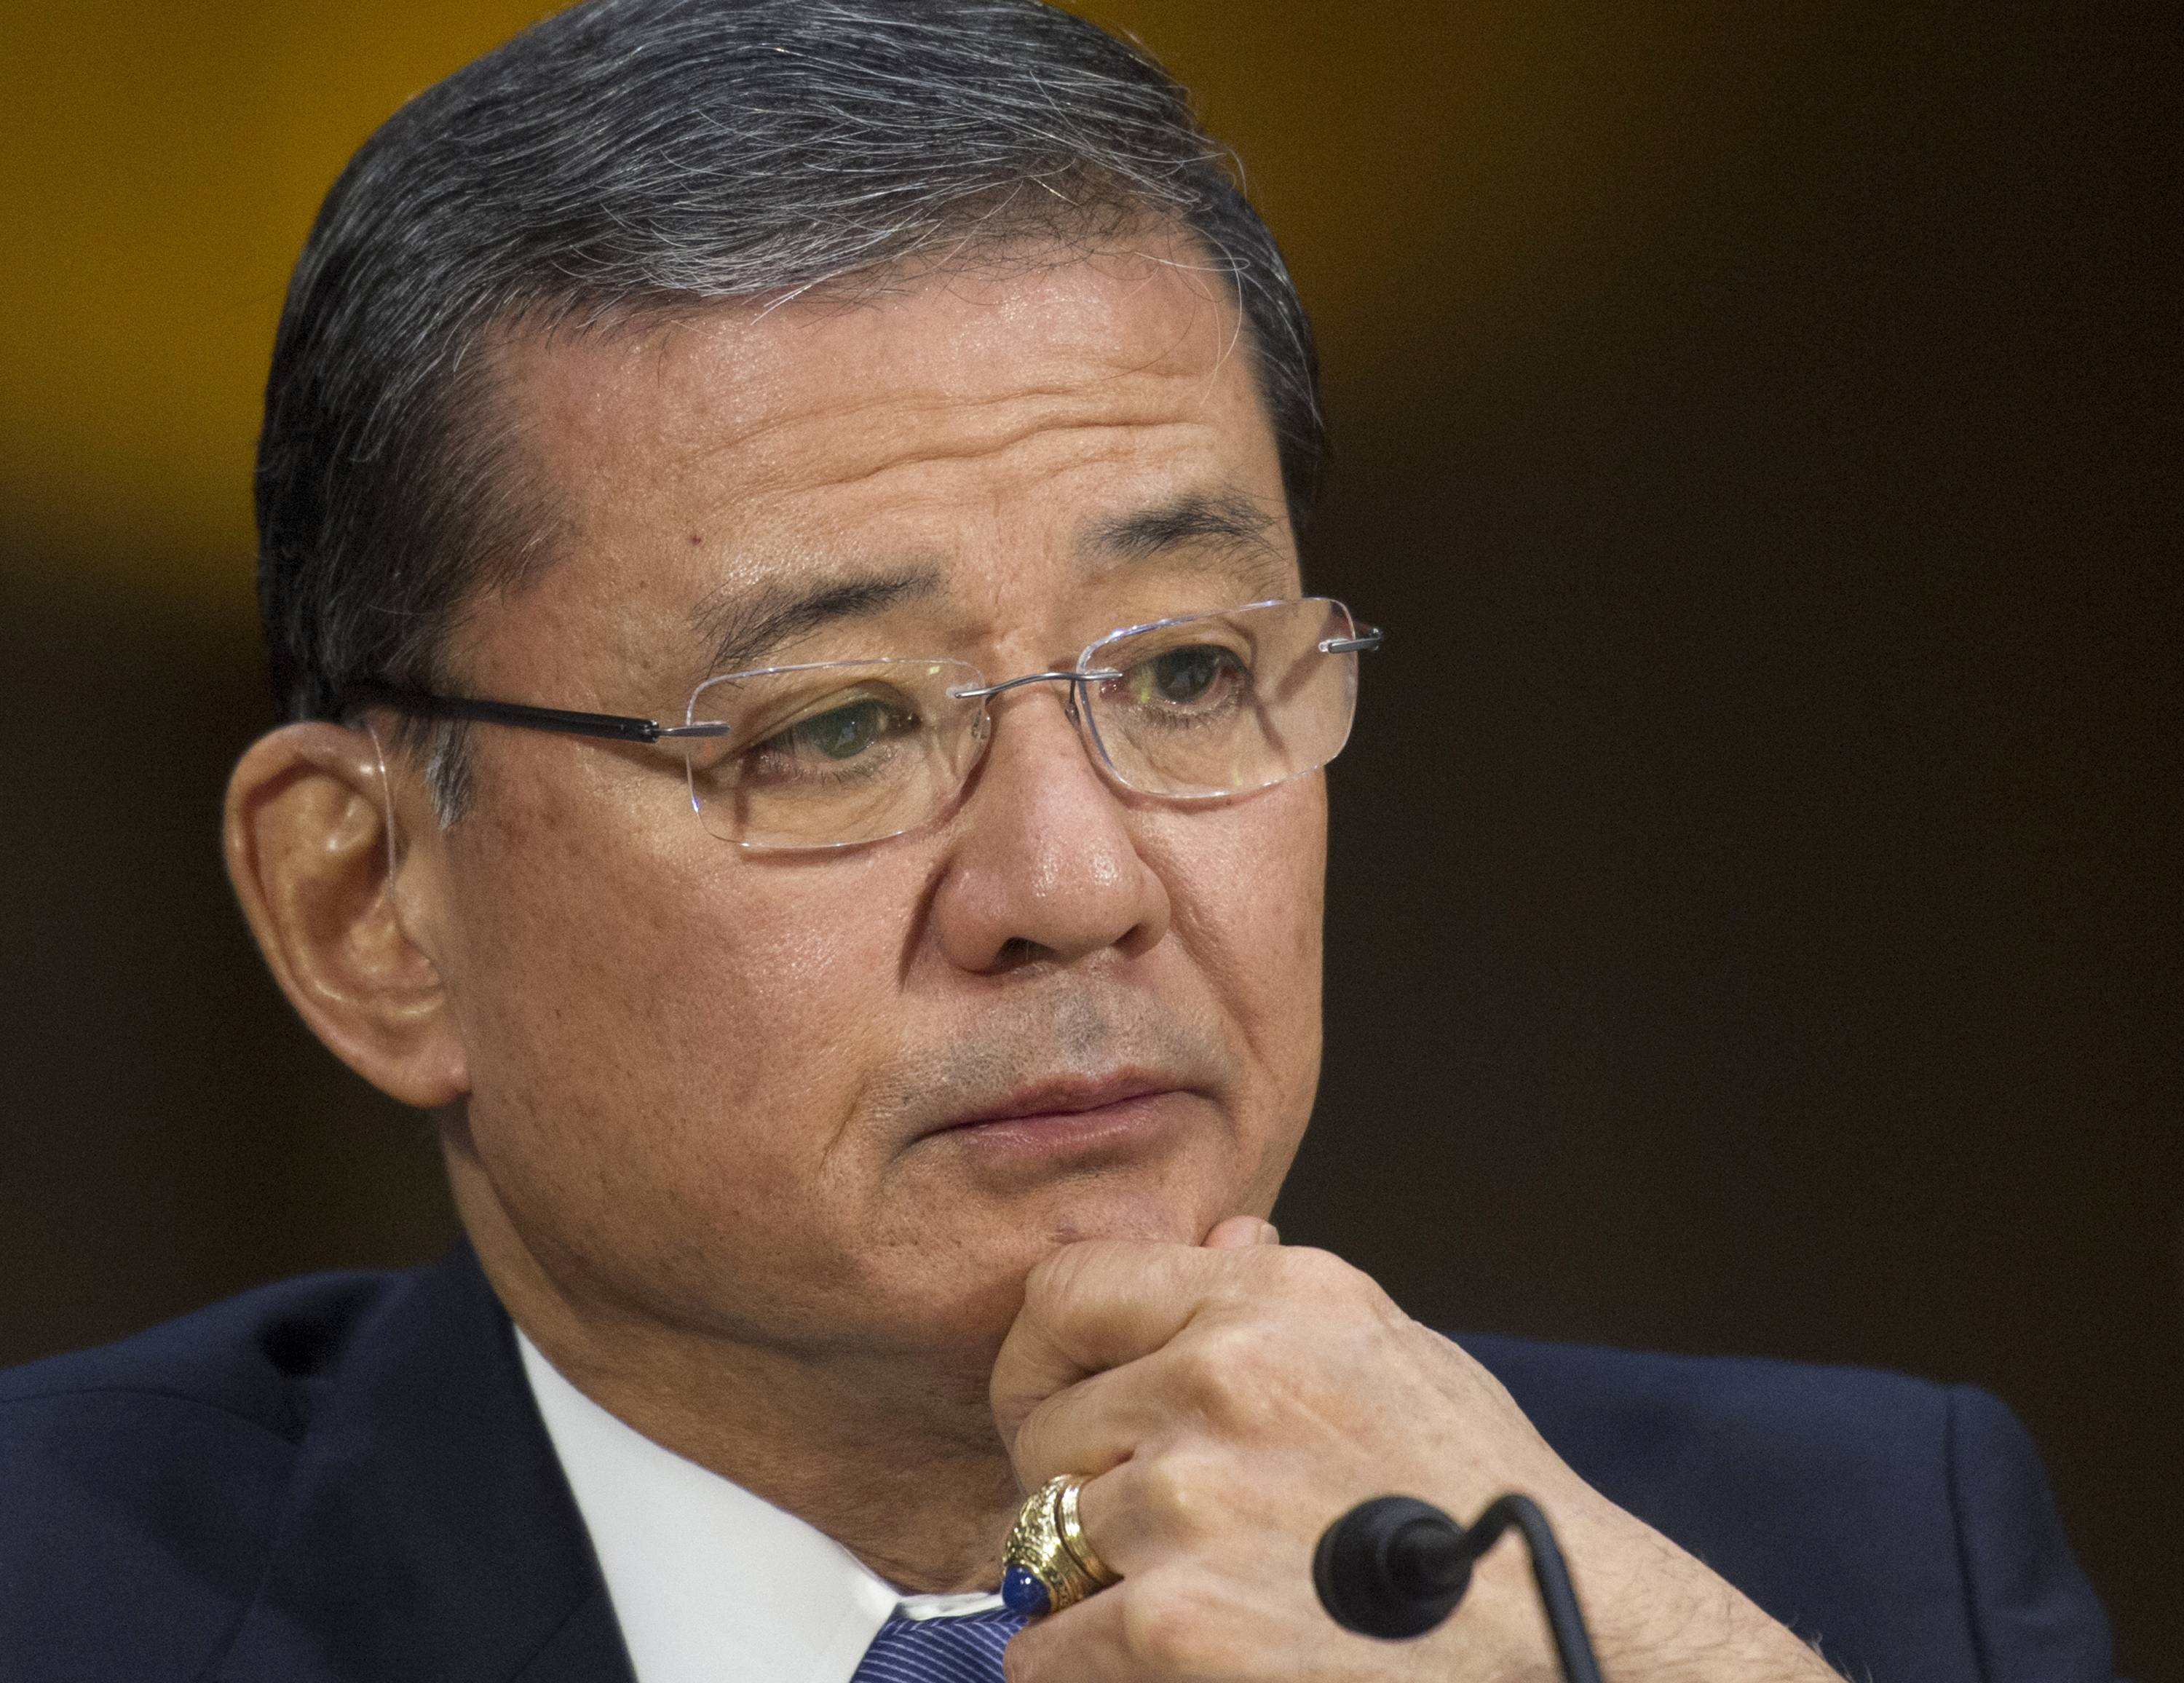 Veterans Affairs Secretary Eric Shinseki is under increasing pressure from Capitol Hill to resign over shoddy care at VA hospitals.